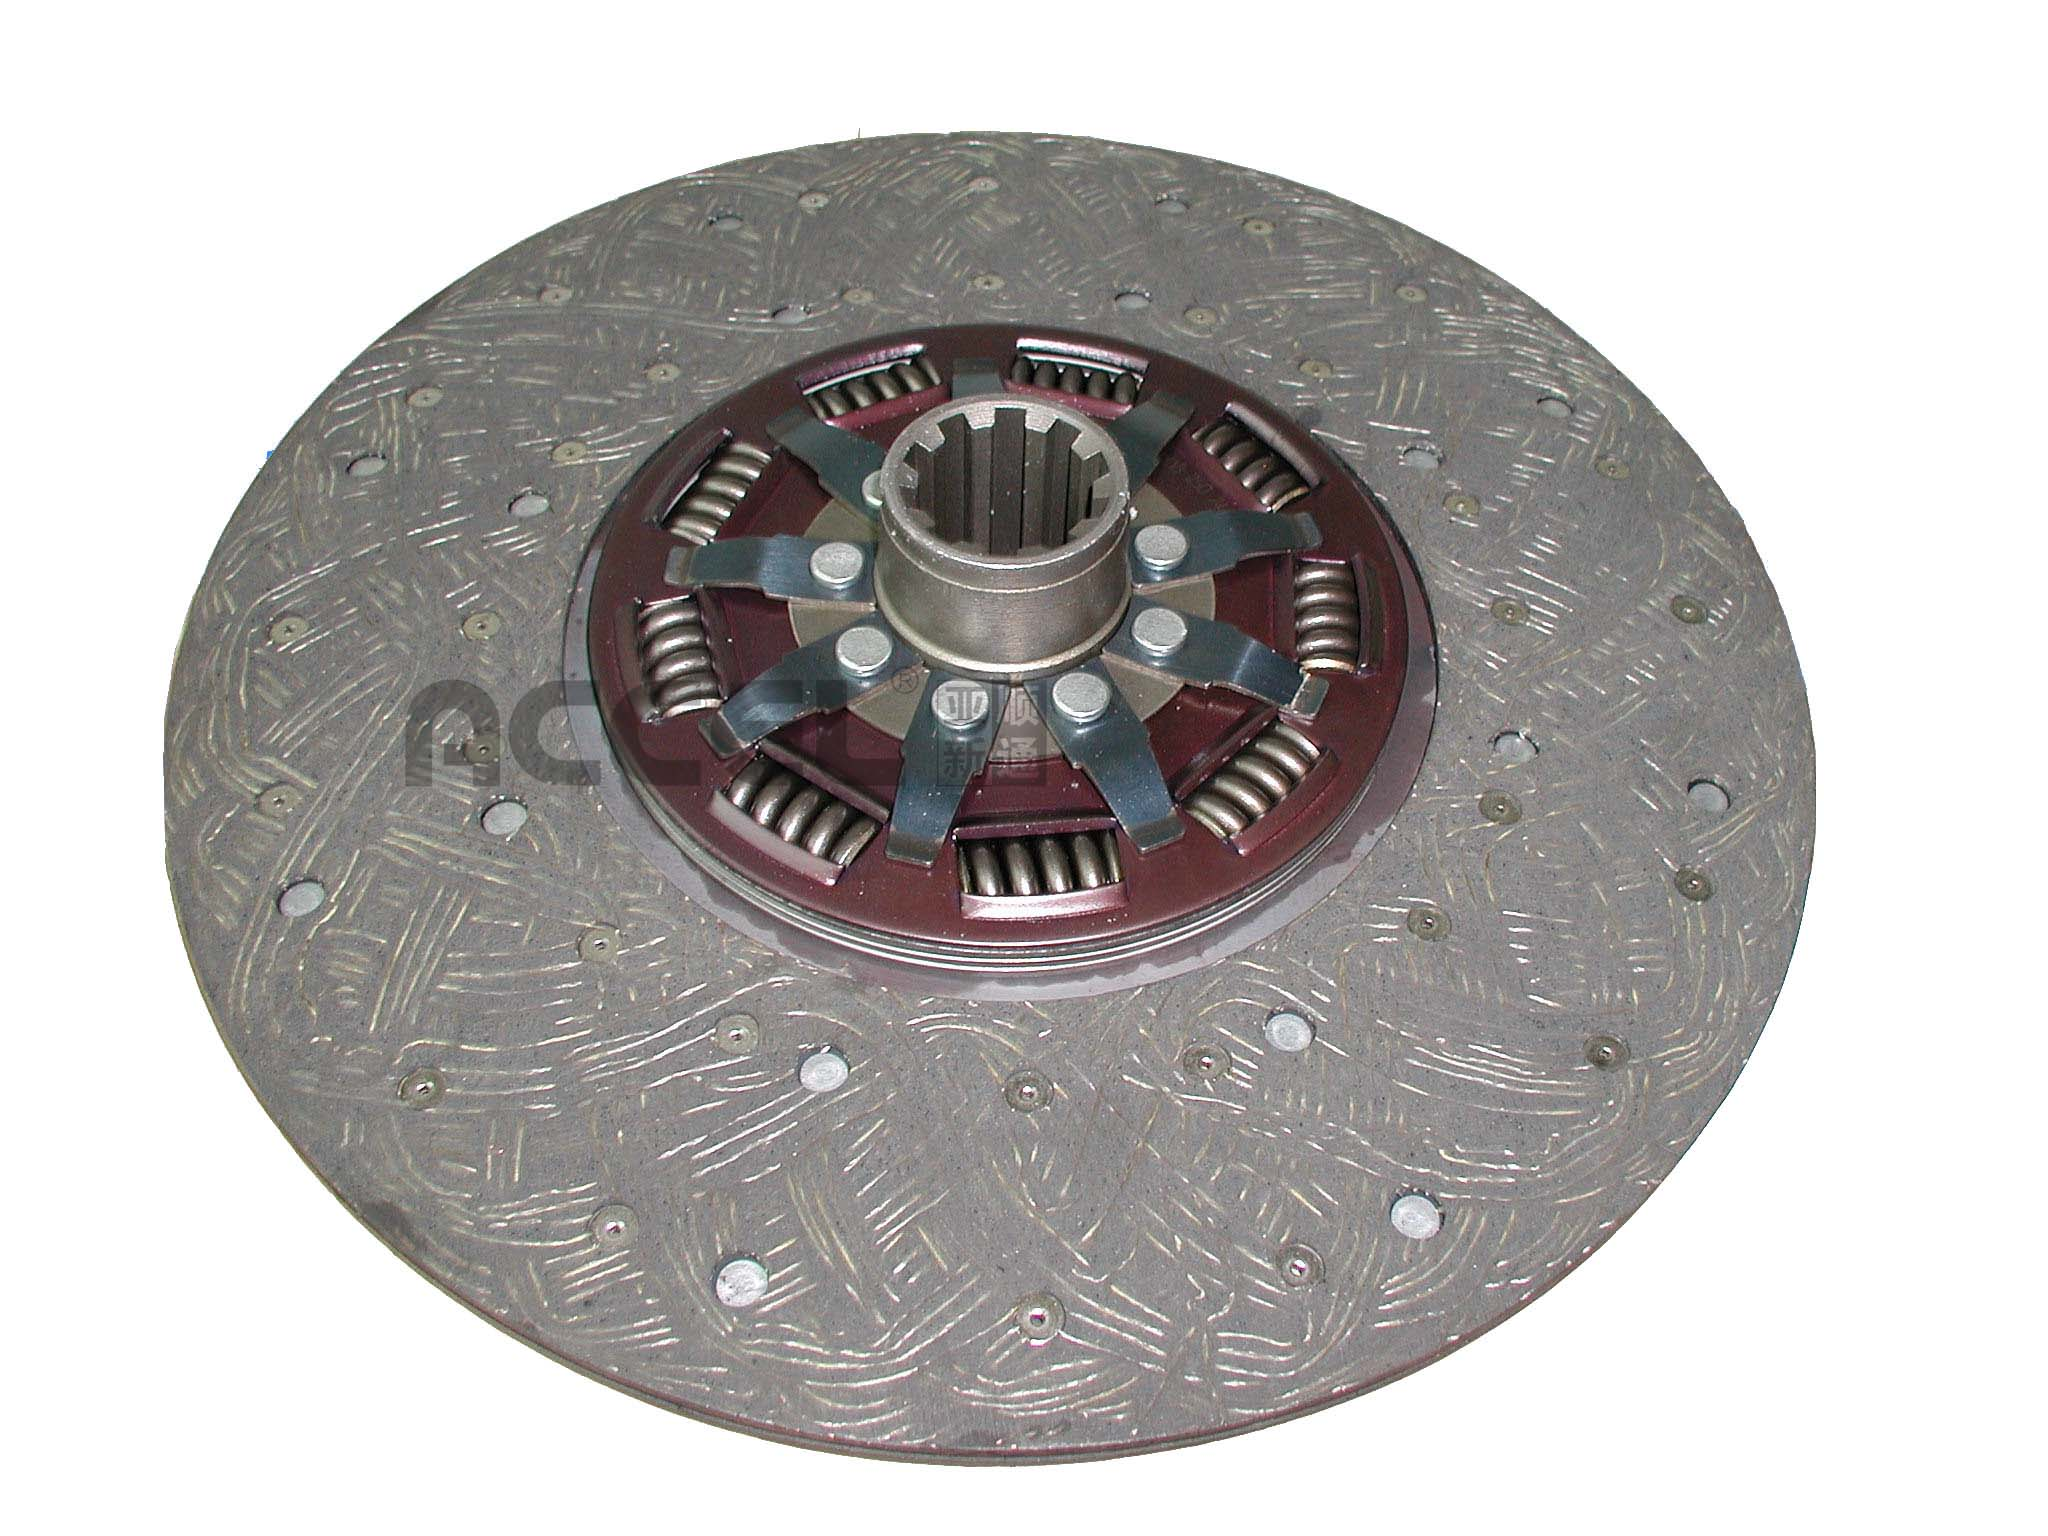 Clutch Disc/OE:003 250 7403/380*200*10*44.4/ACE-096/MERCEDES BENZ/CL0536/1861 494 146